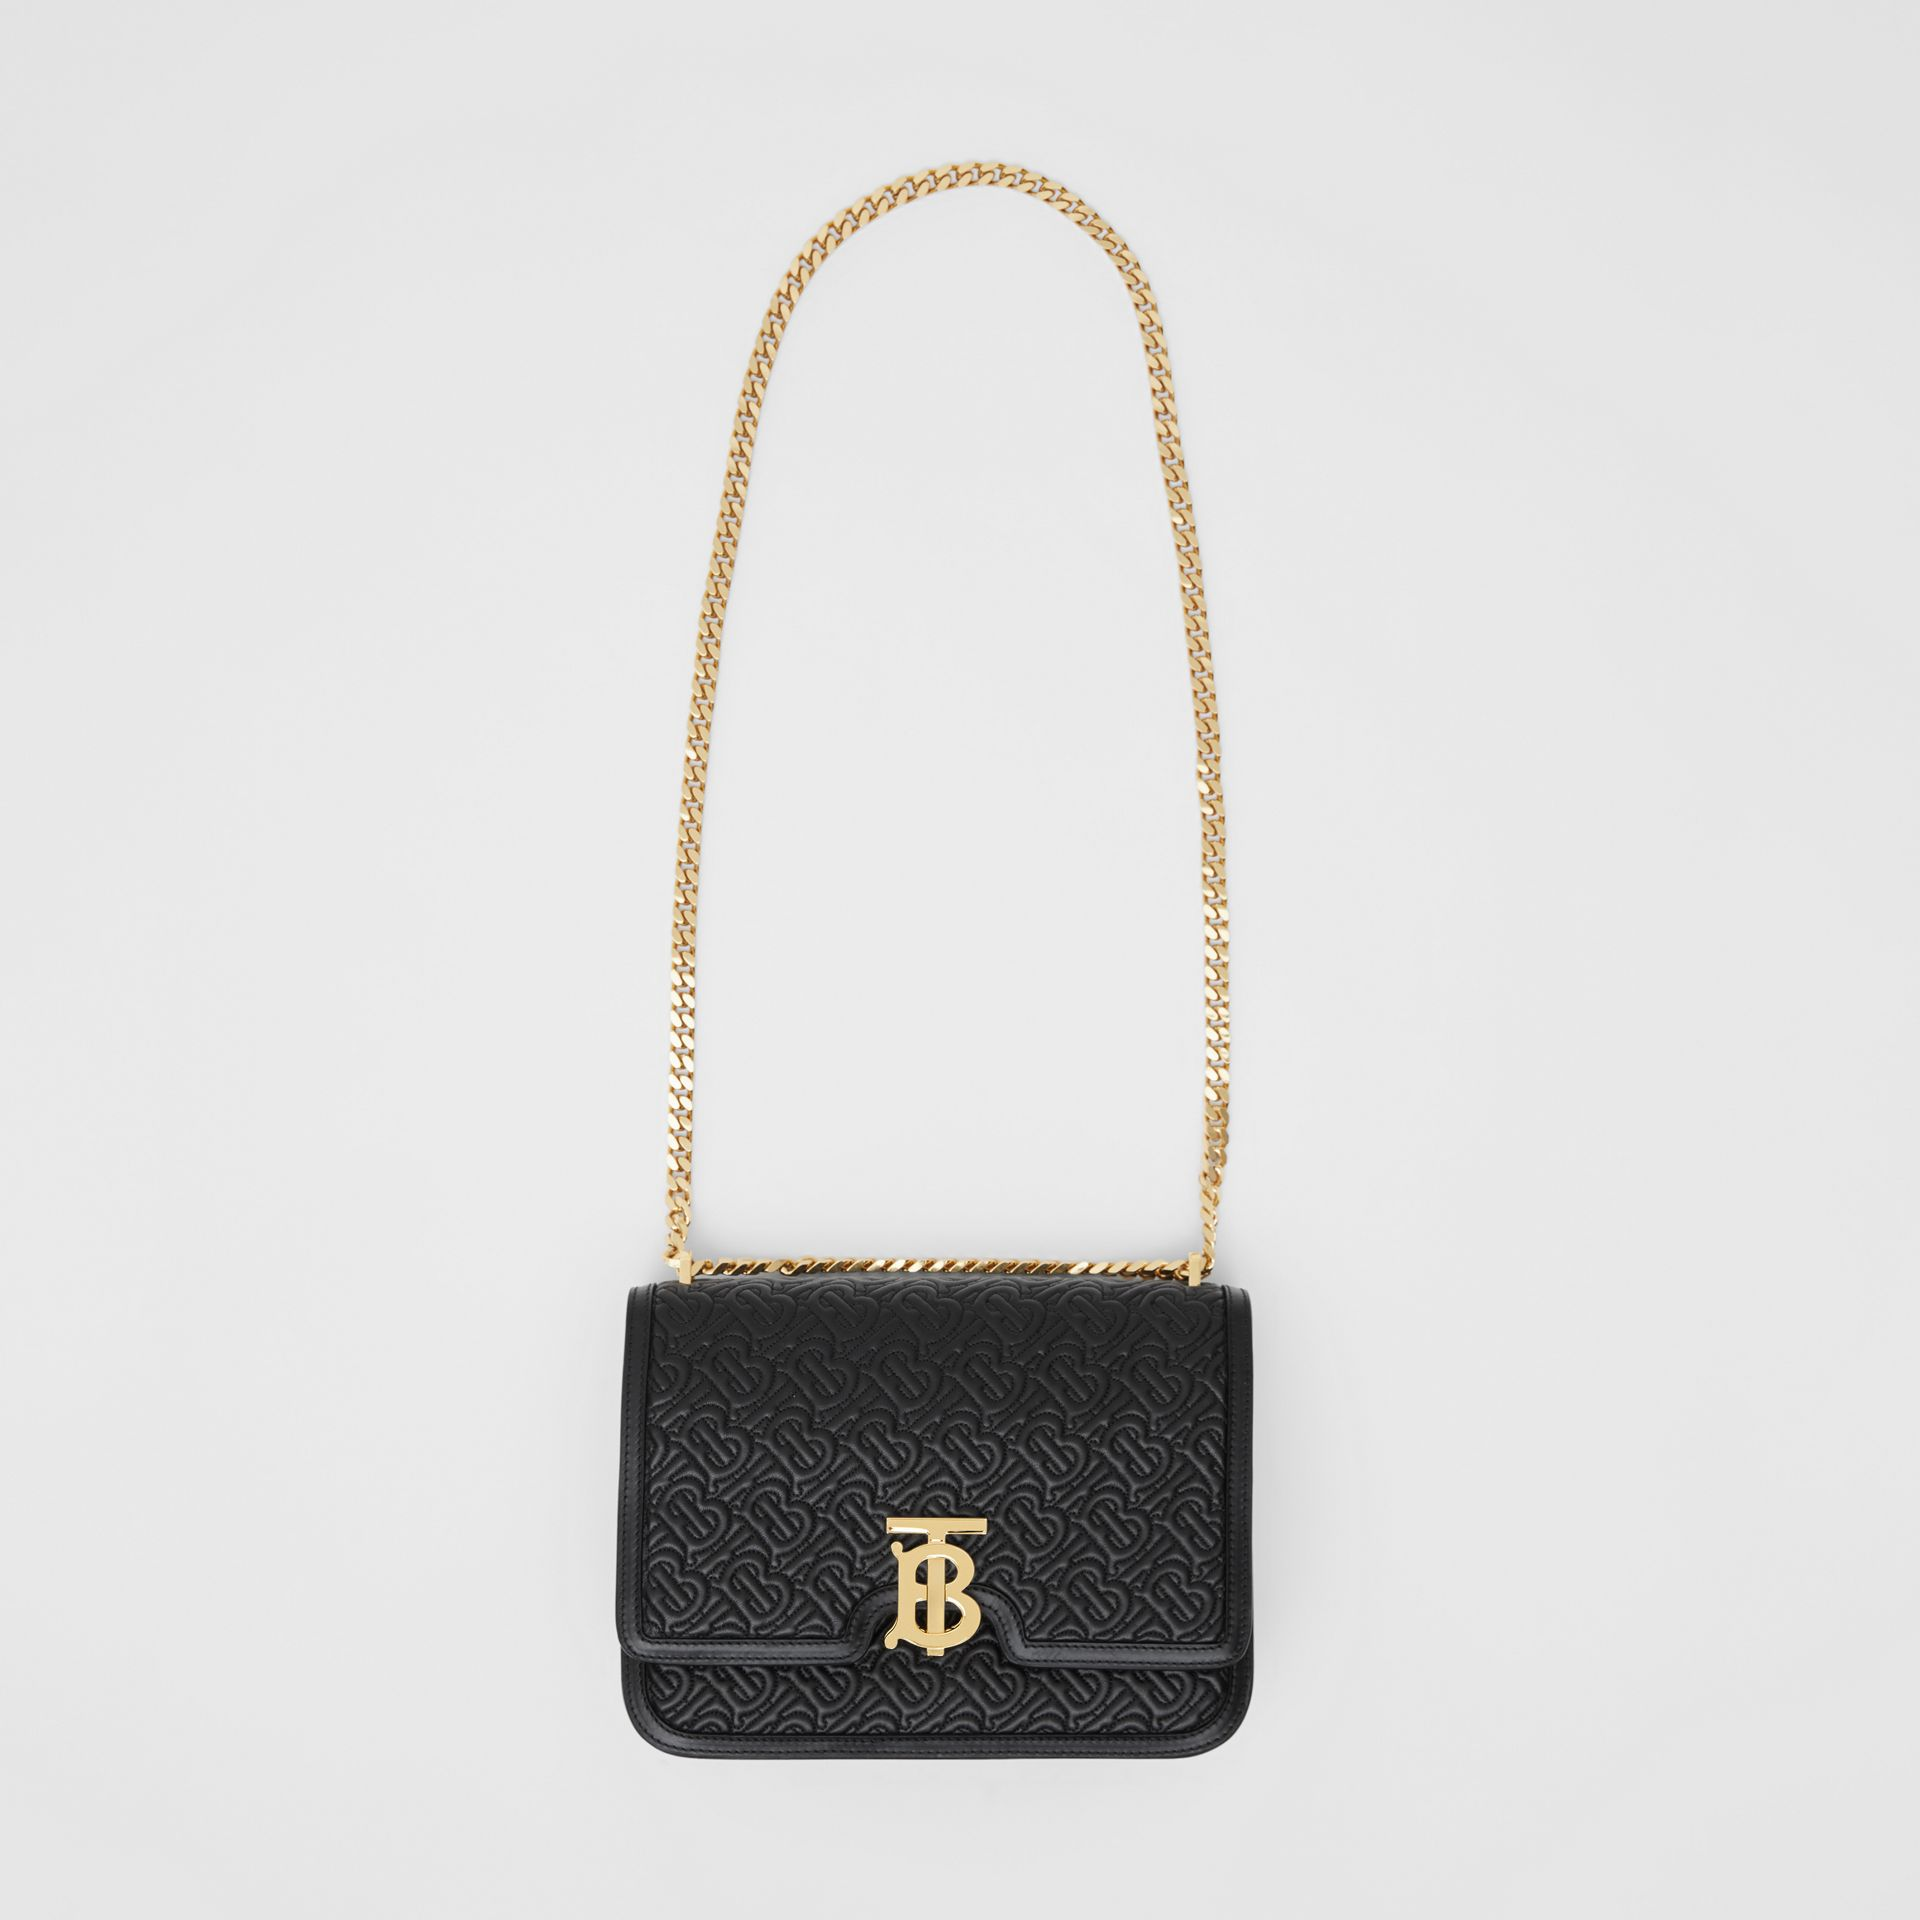 Medium Quilted Monogram Lambskin TB Bag in Black - Women | Burberry Canada - gallery image 3